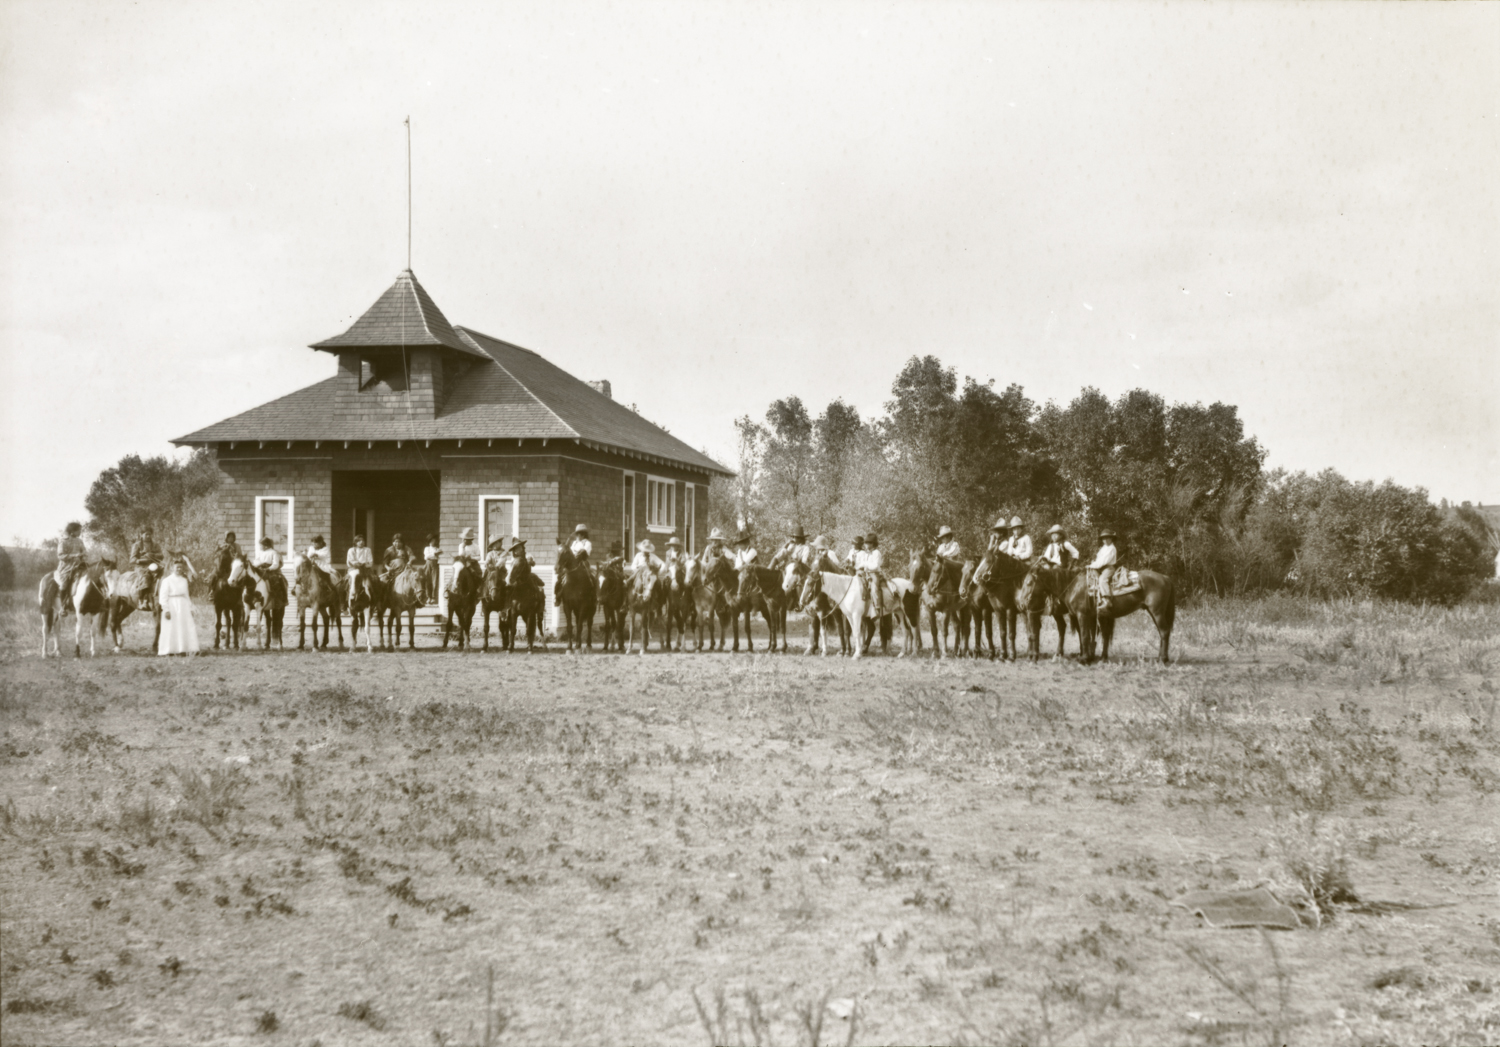 Lodge Grass Mission School Pupils Mounted, Lodge Grass, Crow Reservation, Montana, 1908. Photograph by Joseph Dixon. Courtesy of the Mathers Museum of World Cultures, Wanamaker Collection, Indiana University, Bloomington, I.N., W-0947.